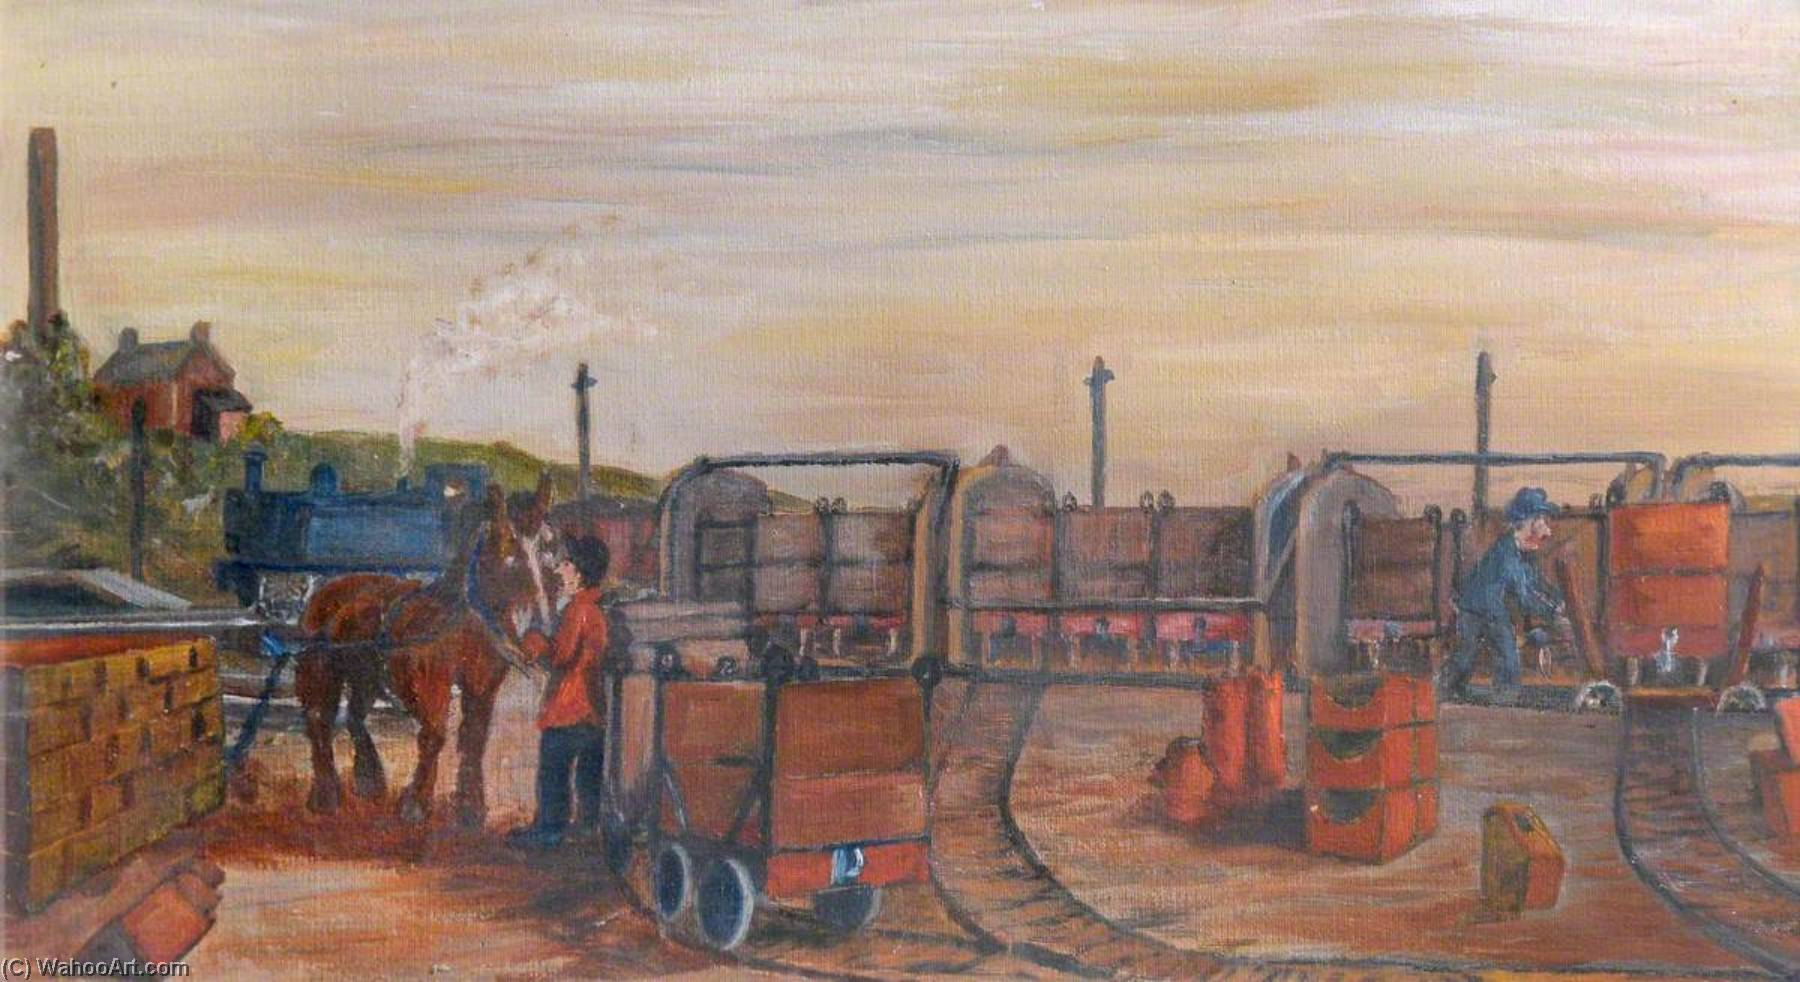 Knowle Hill Exchange Sidings, Buckley, c.1925, Oil On Canvas by James Bentley